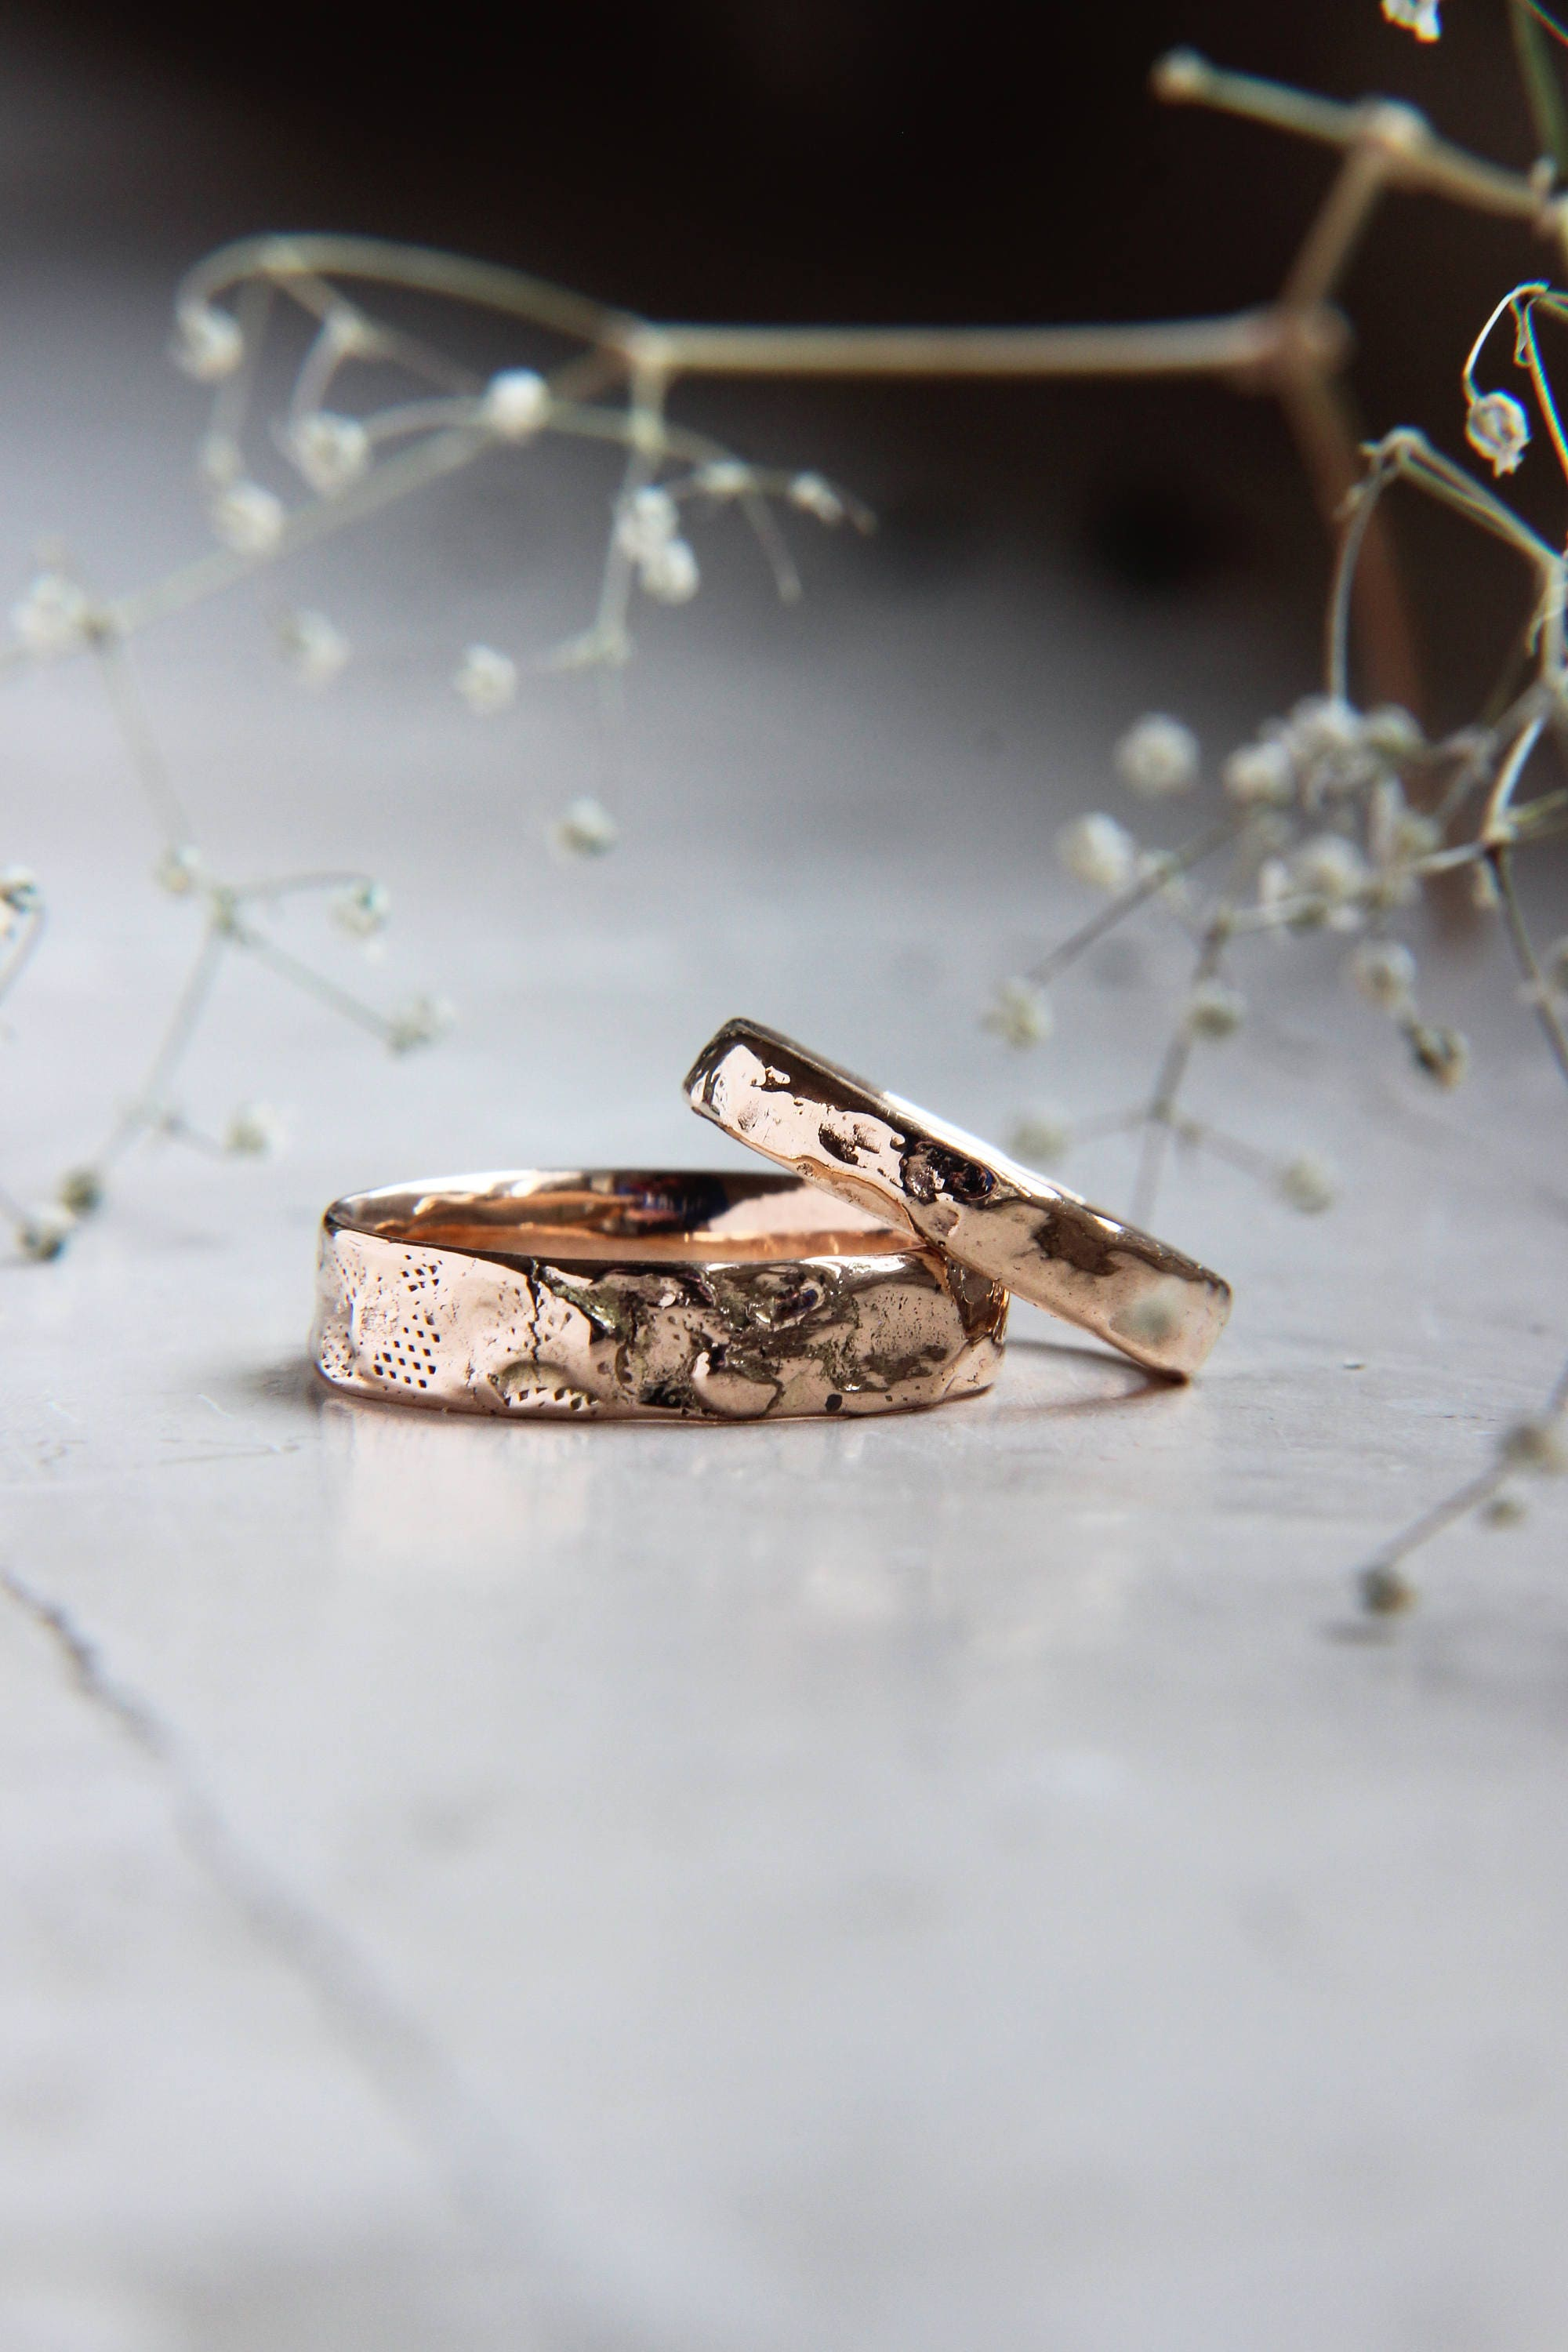 nature collections leaf folha simplynaturebiogoods do wedding products alianca goods rings com bio simply ring cerrado s